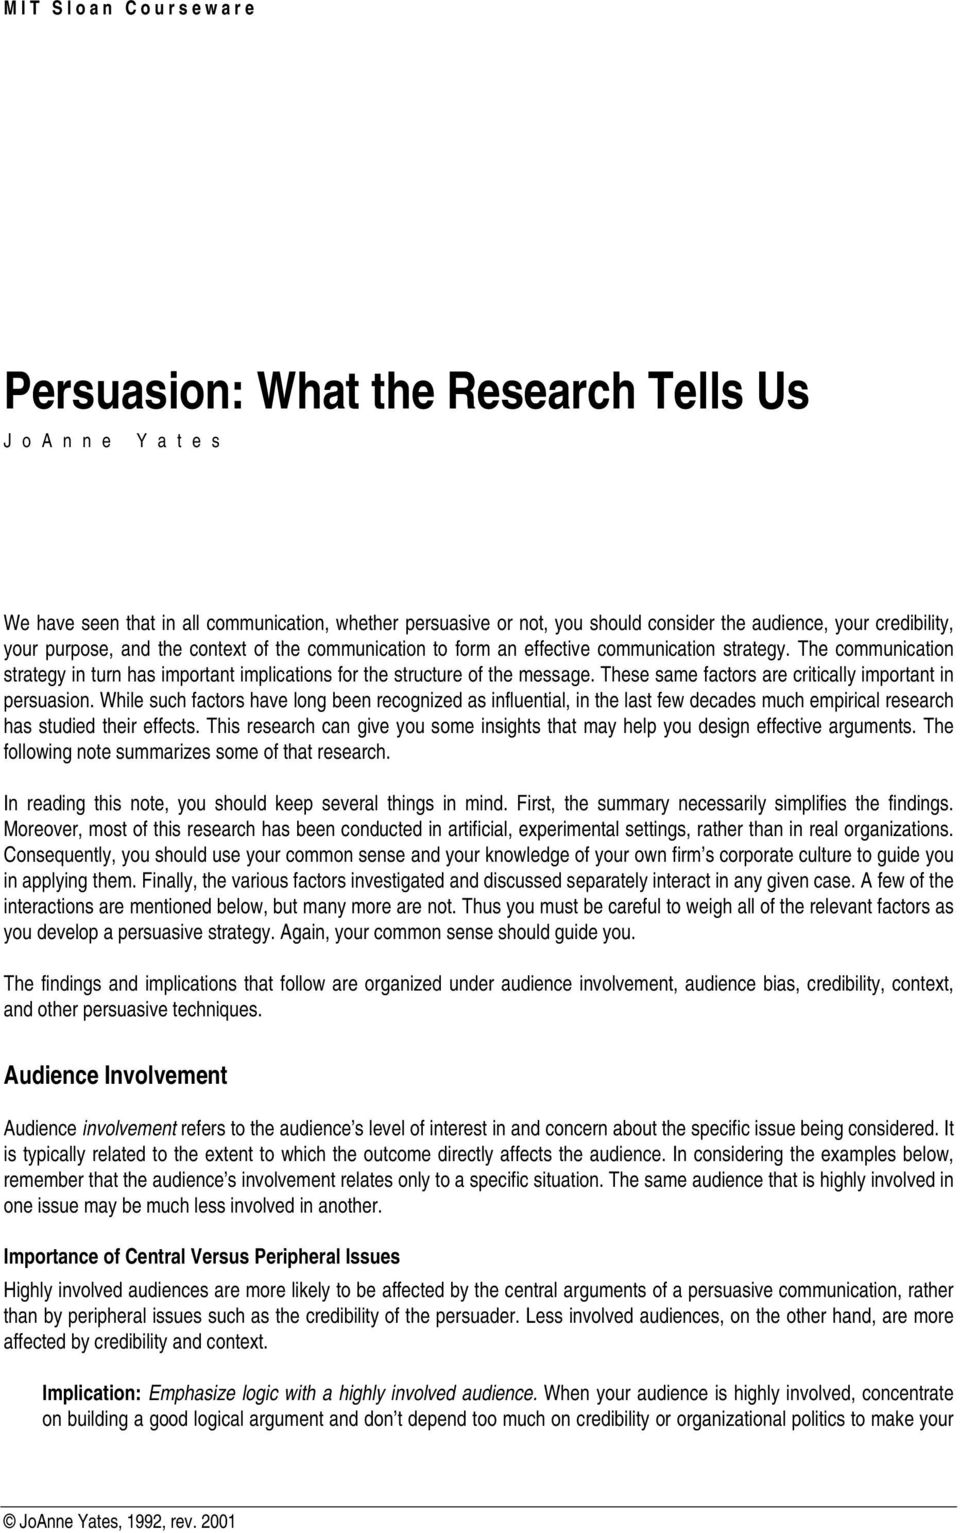 These same factors are critically important in persuasion. While such factors have long been recognized as influential, in the last few decades much empirical research has studied their effects.